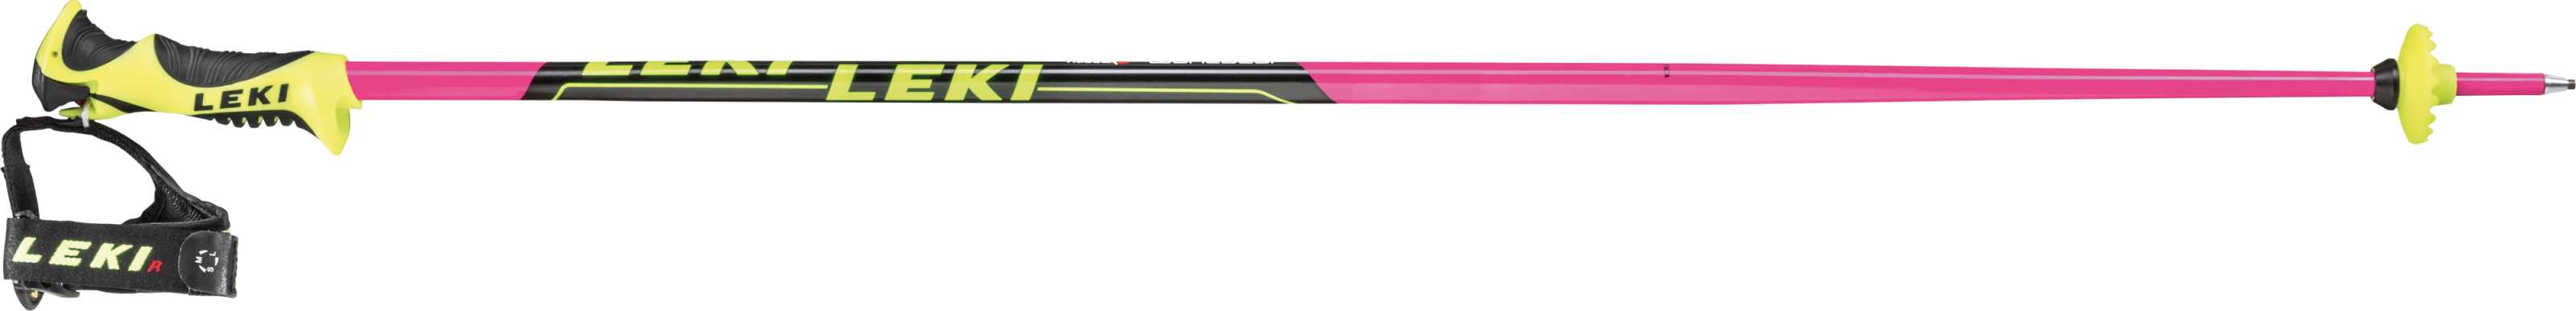 HOLE WC LITE SL TR-S NEONPINK | BLACK-WHITE-NEON YELLOW